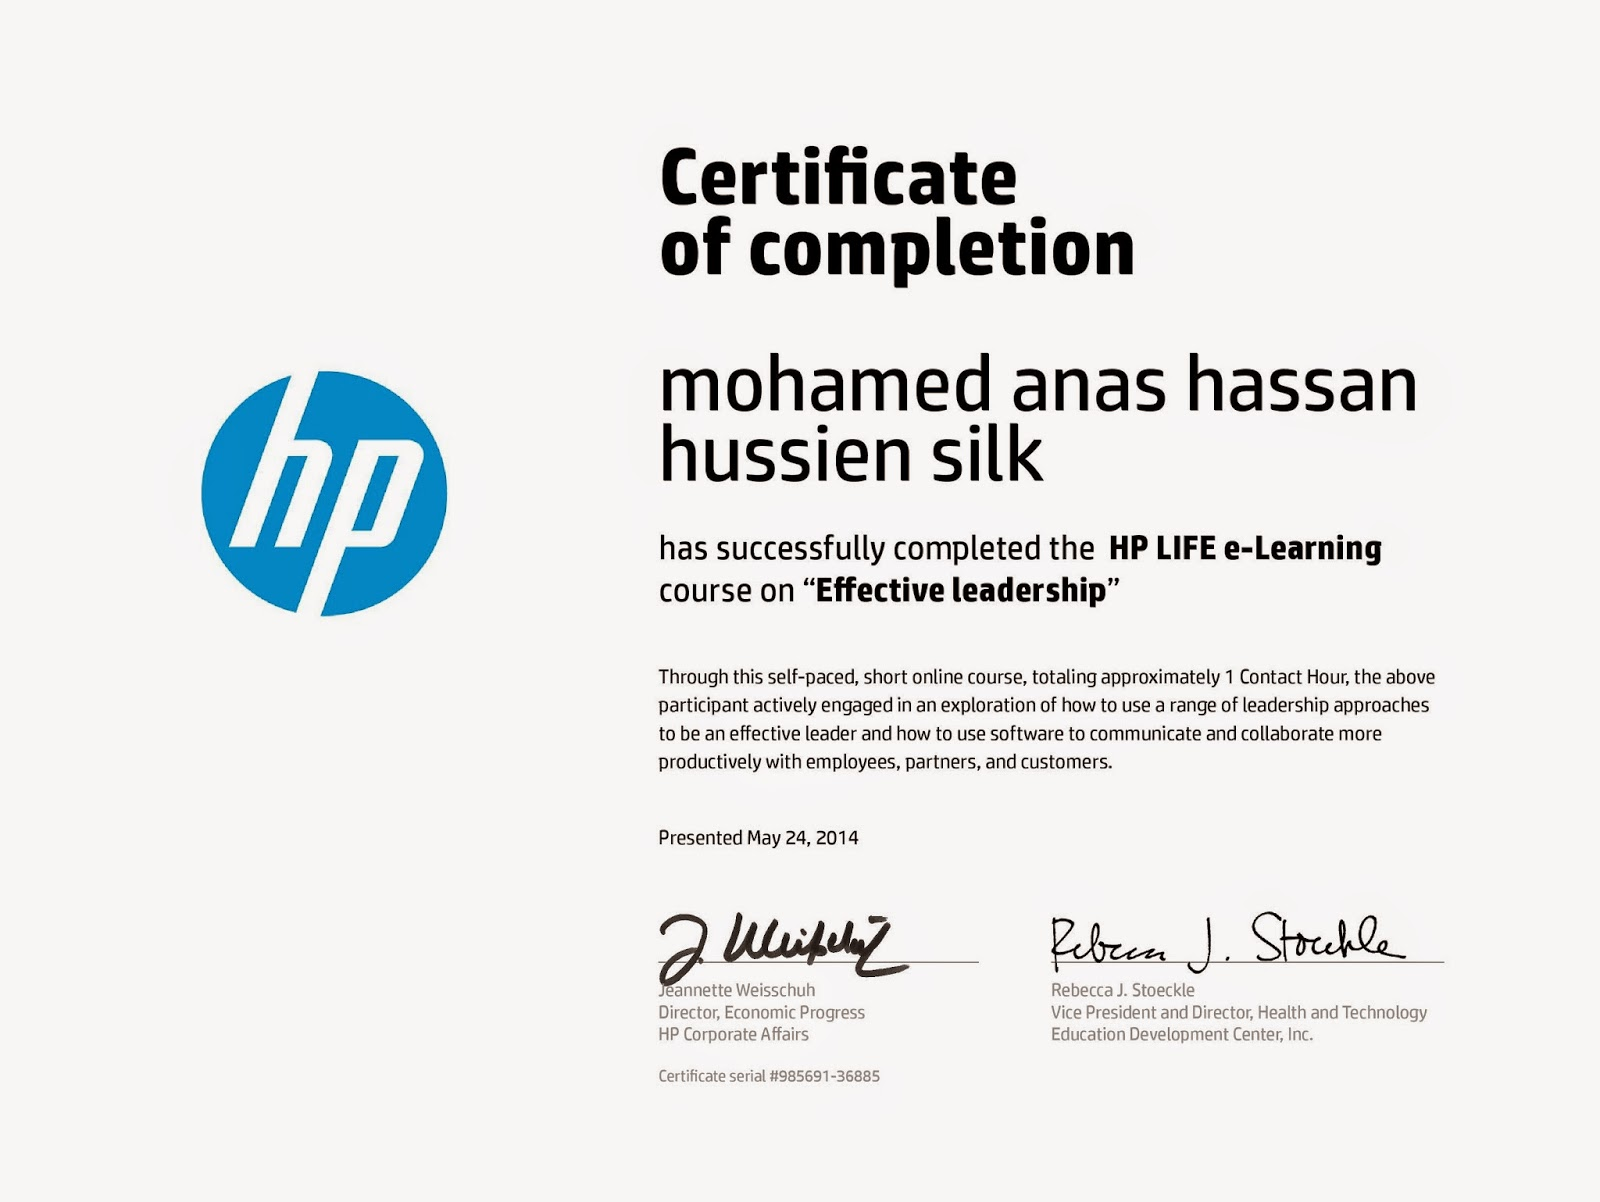 hp certificate effictive leadership-egyptian markter seo